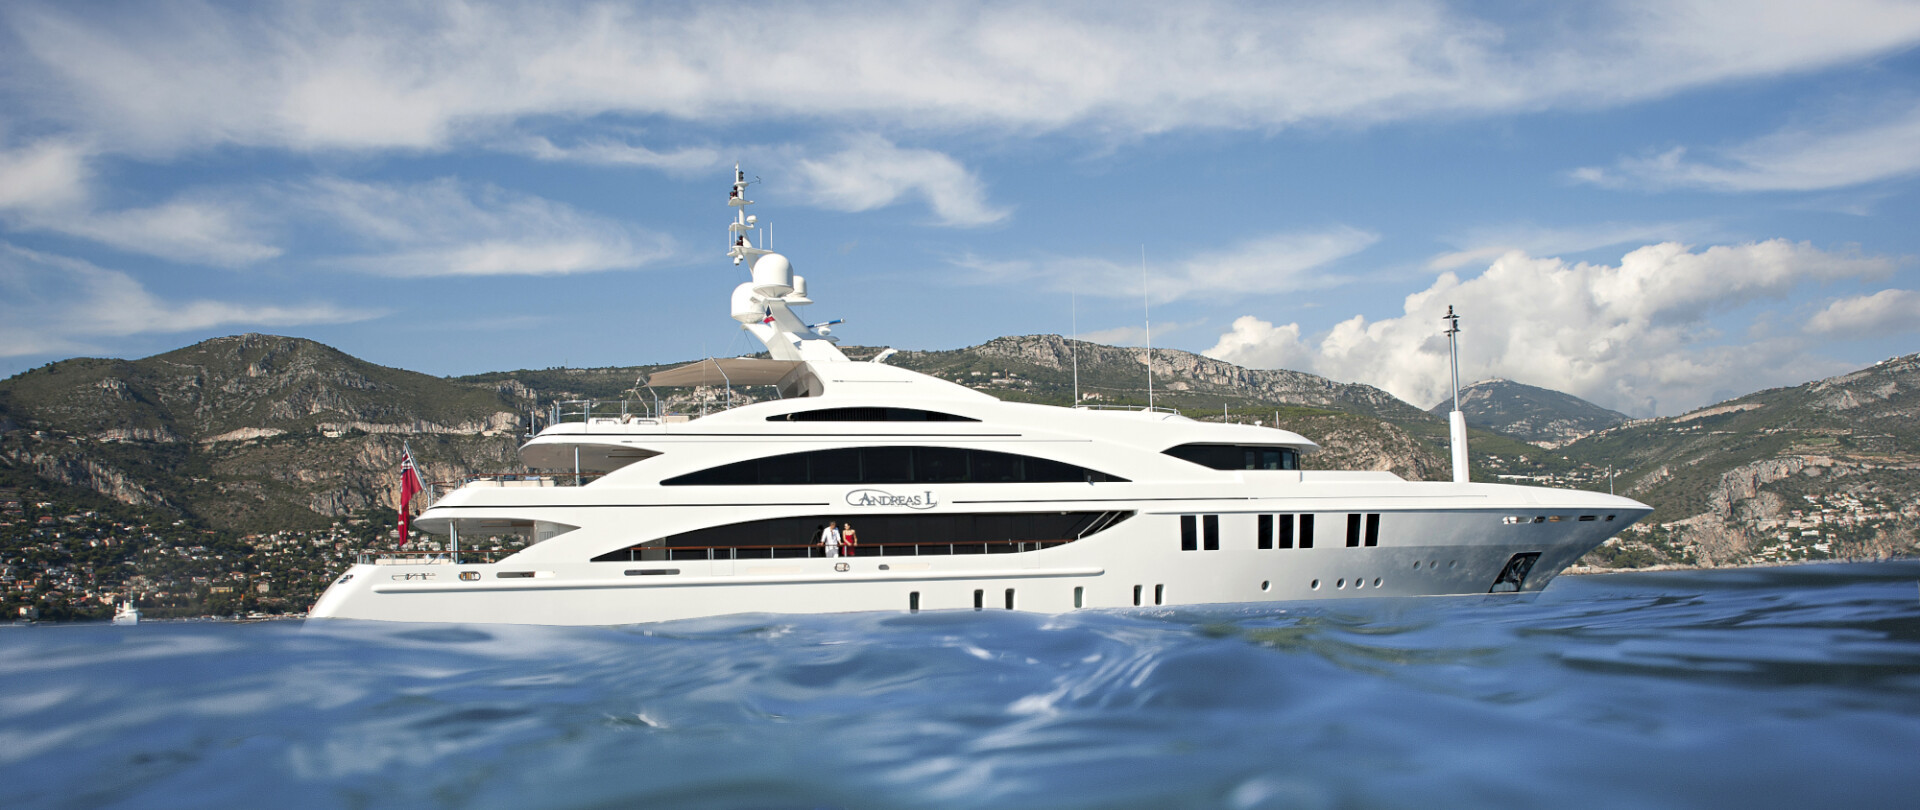 Andreas L, new CA for sale | Attending MYS 2019 photo 2